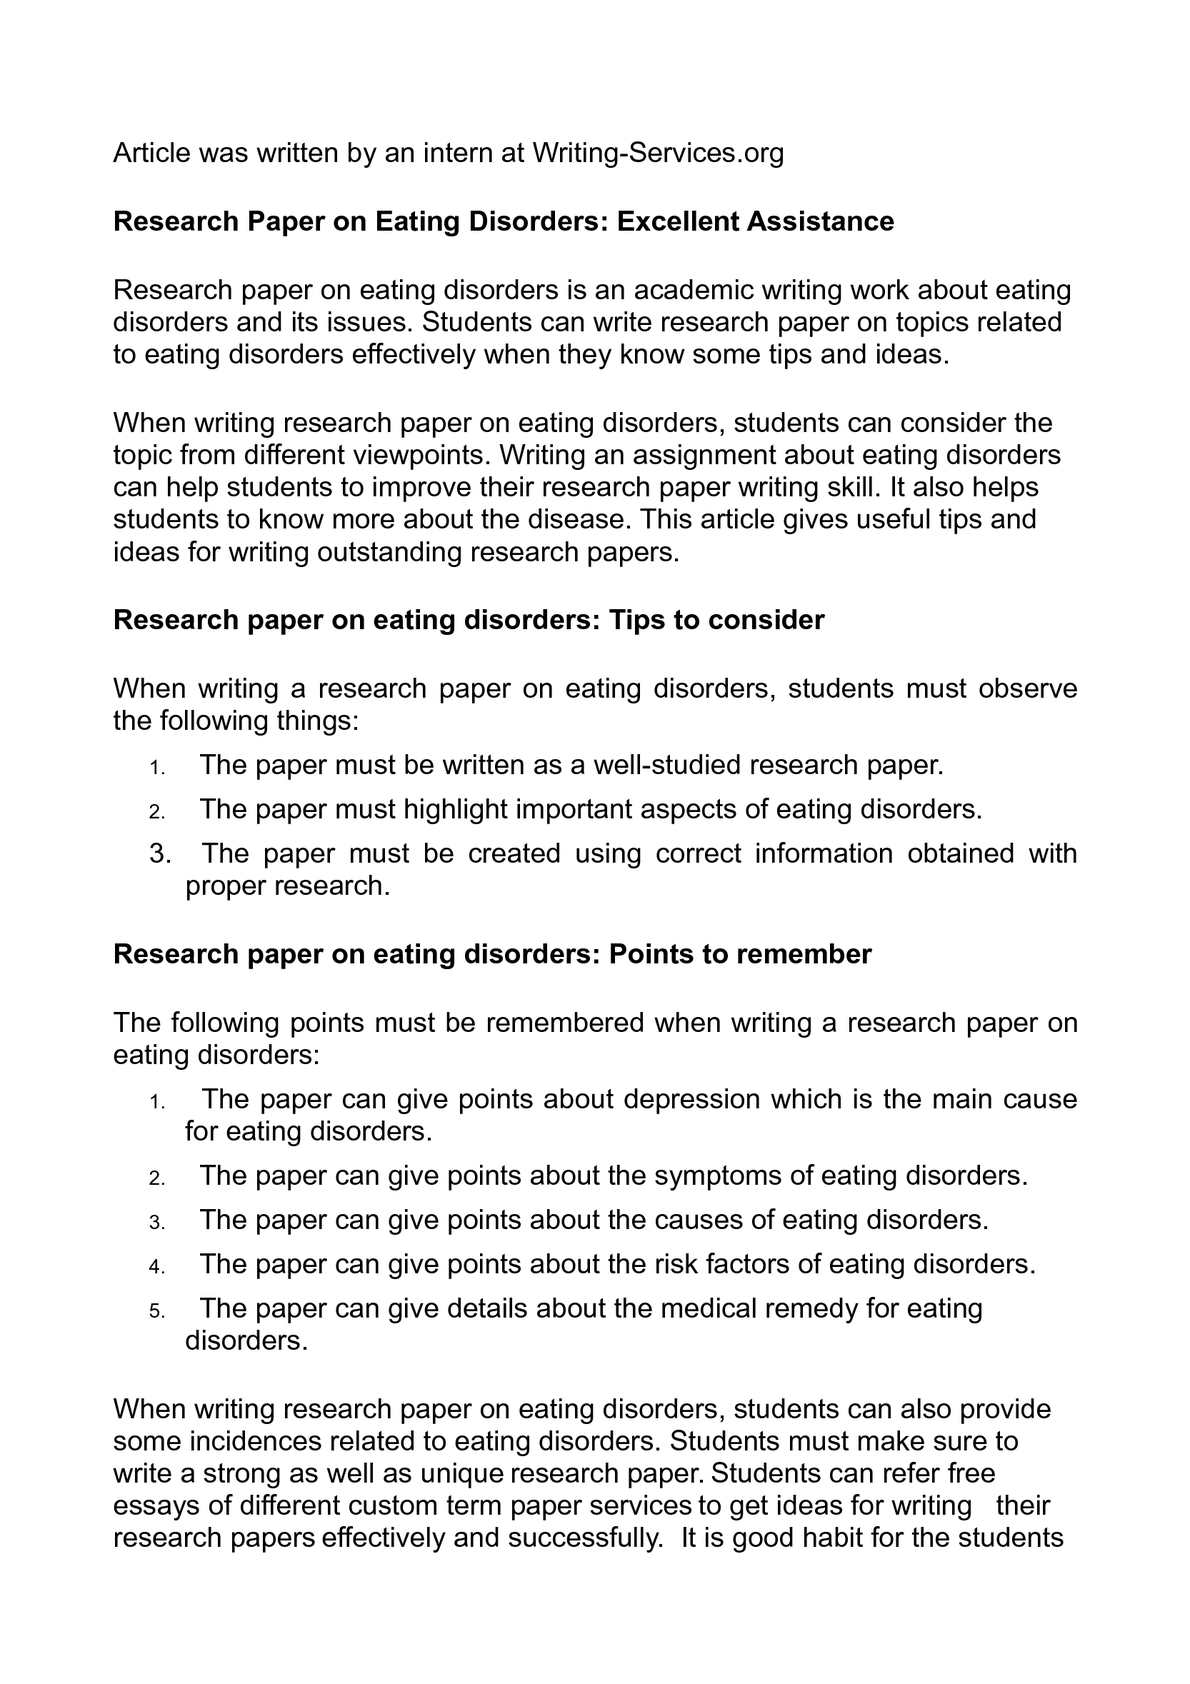 001 P1 Research Paper On Eating Wonderful Disorders Topics Articles And The Media Full